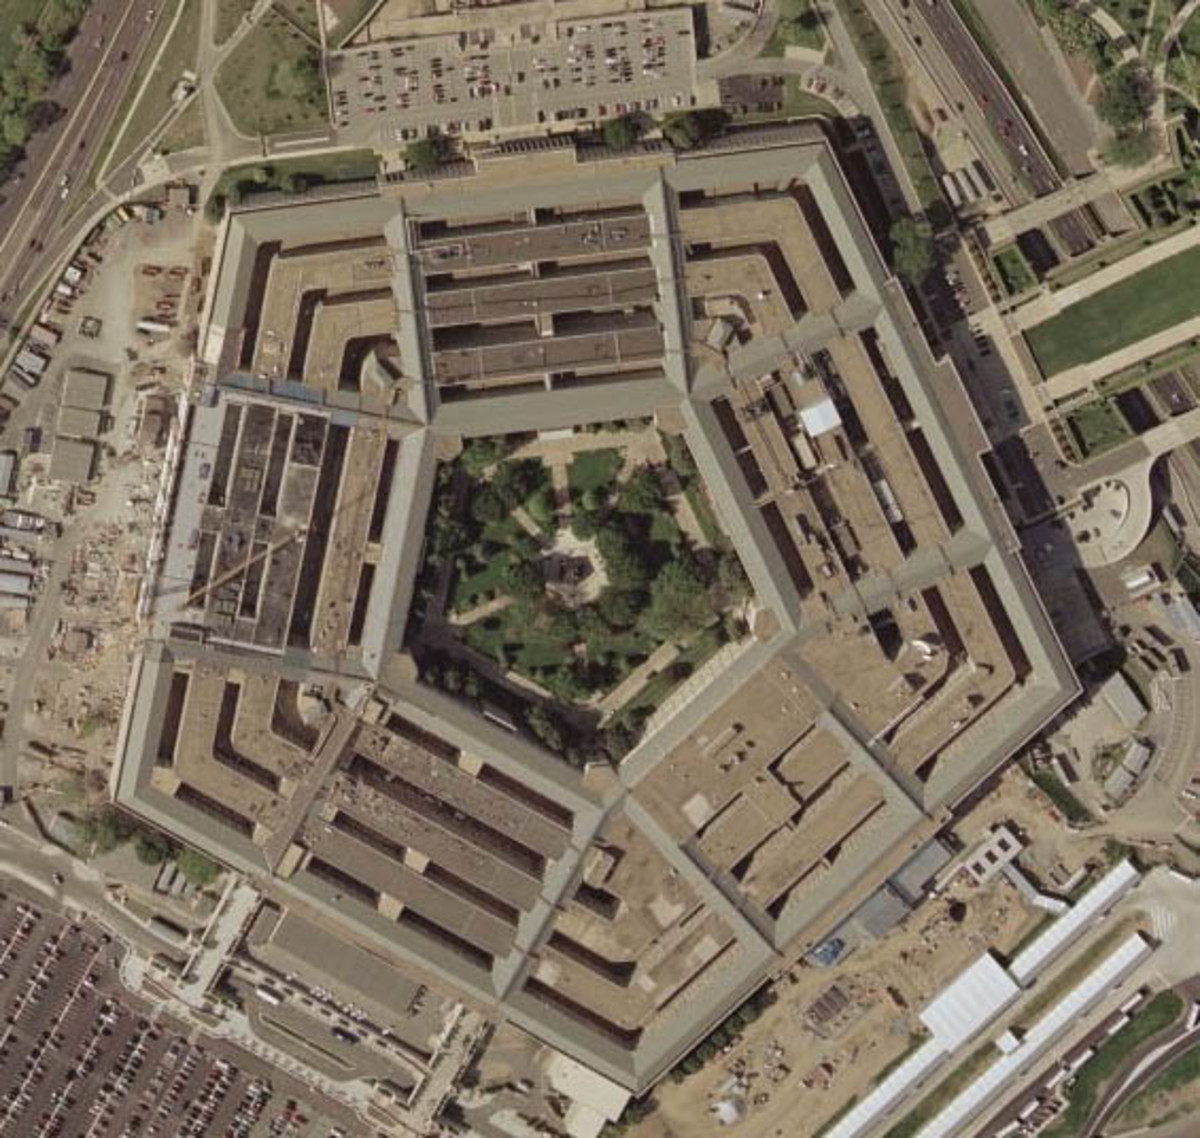 Satellite image of the Pentagon.